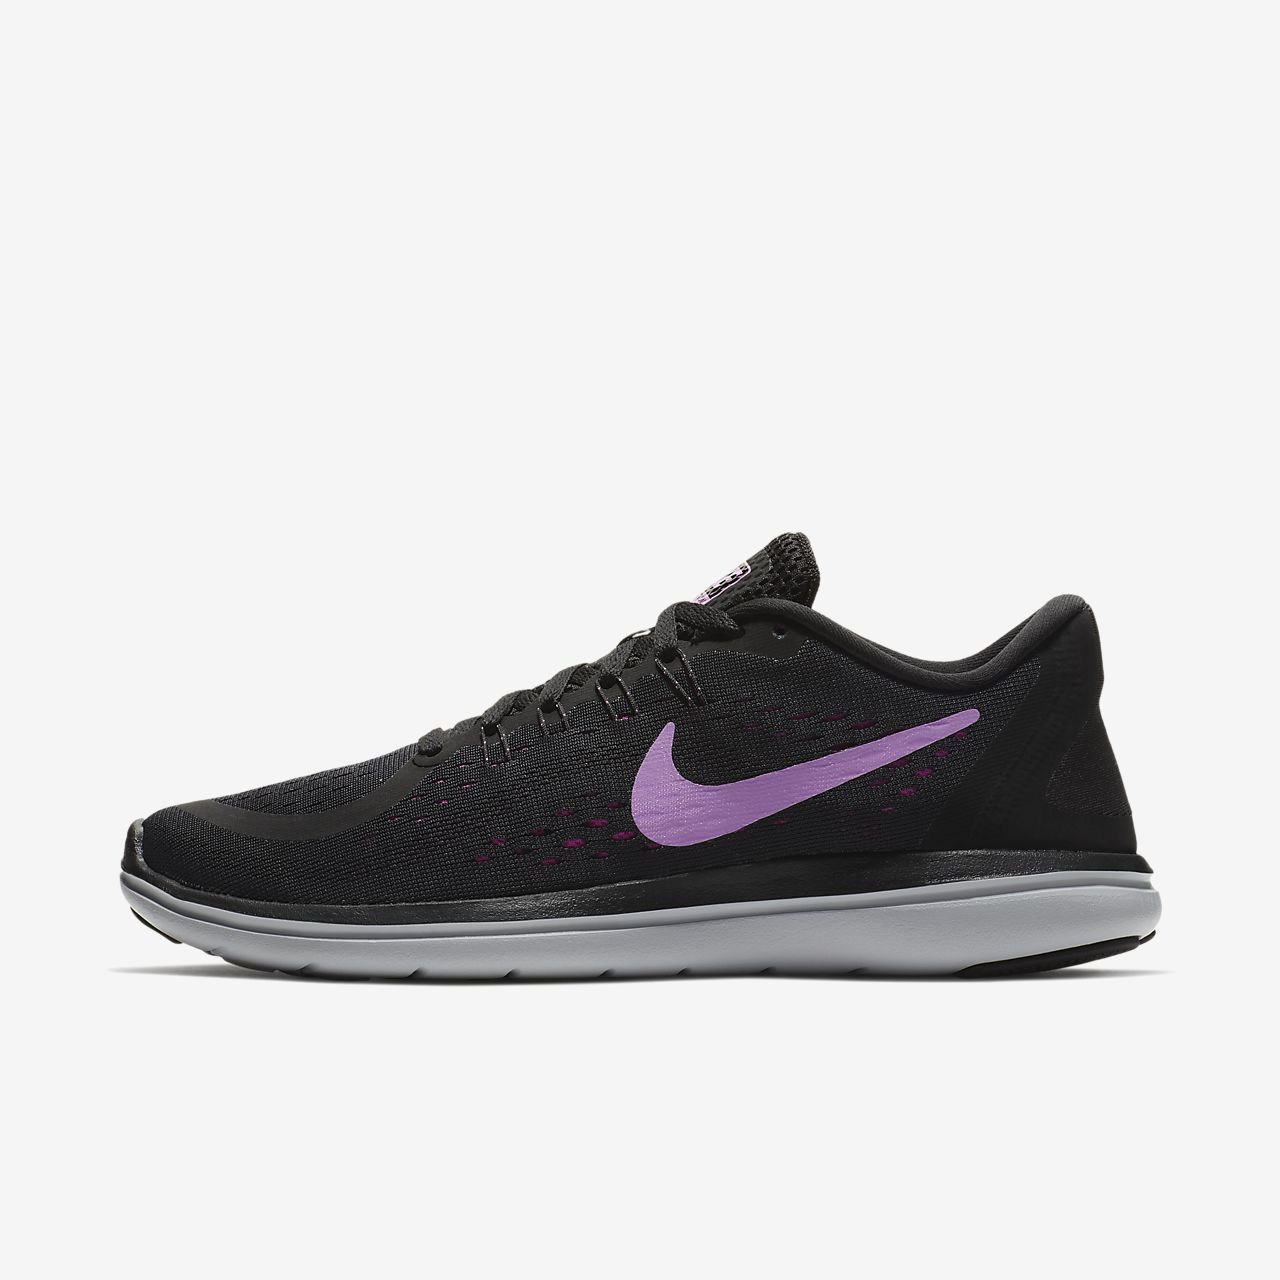 nike shoes running shoes for women 2017-2018 flu map 2019 855645